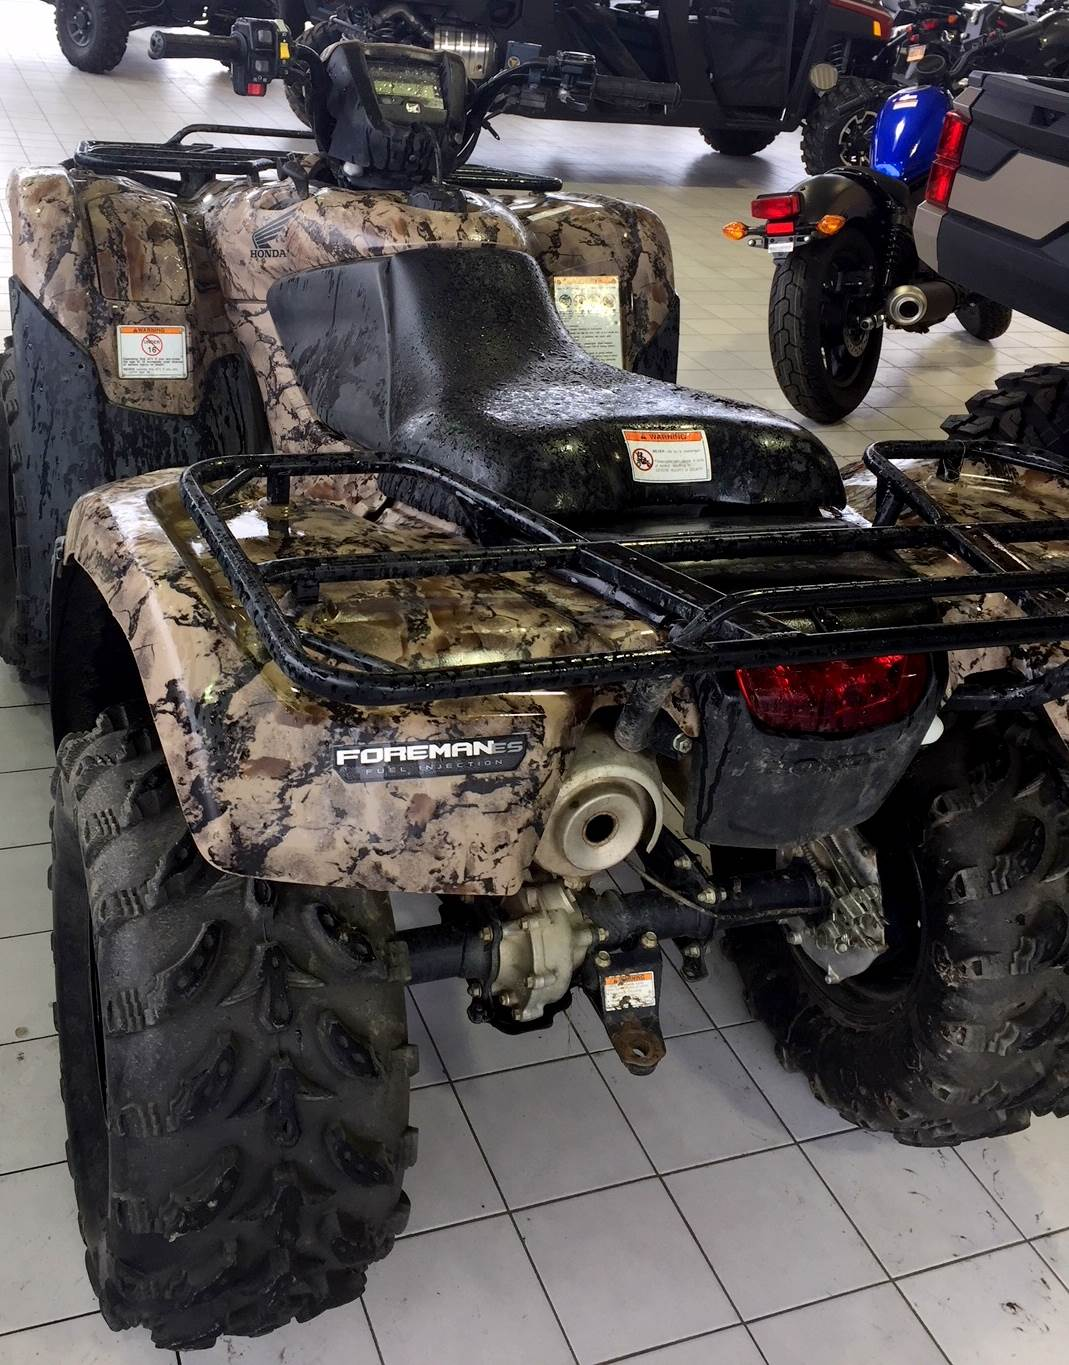 2013 FourTrax Foreman 4x4 ES with EPS